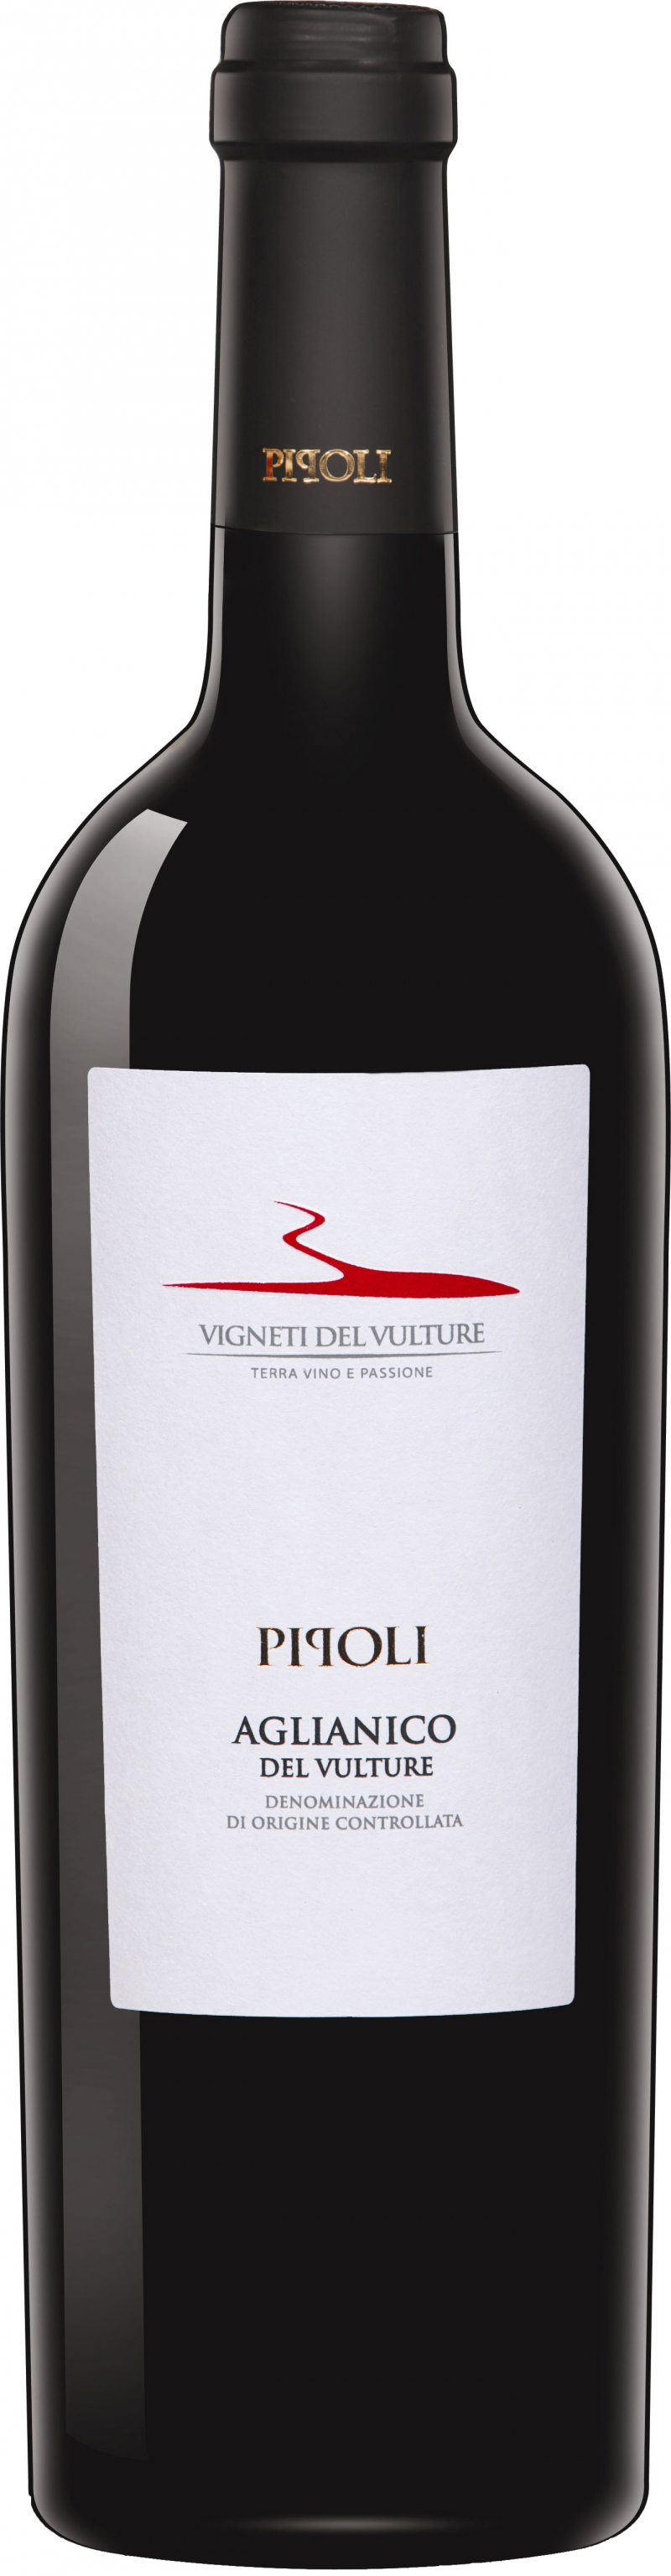 Vigneti Del Vulture - Aglianico del Vulture Pipoli 2018 (75cl Bottle)